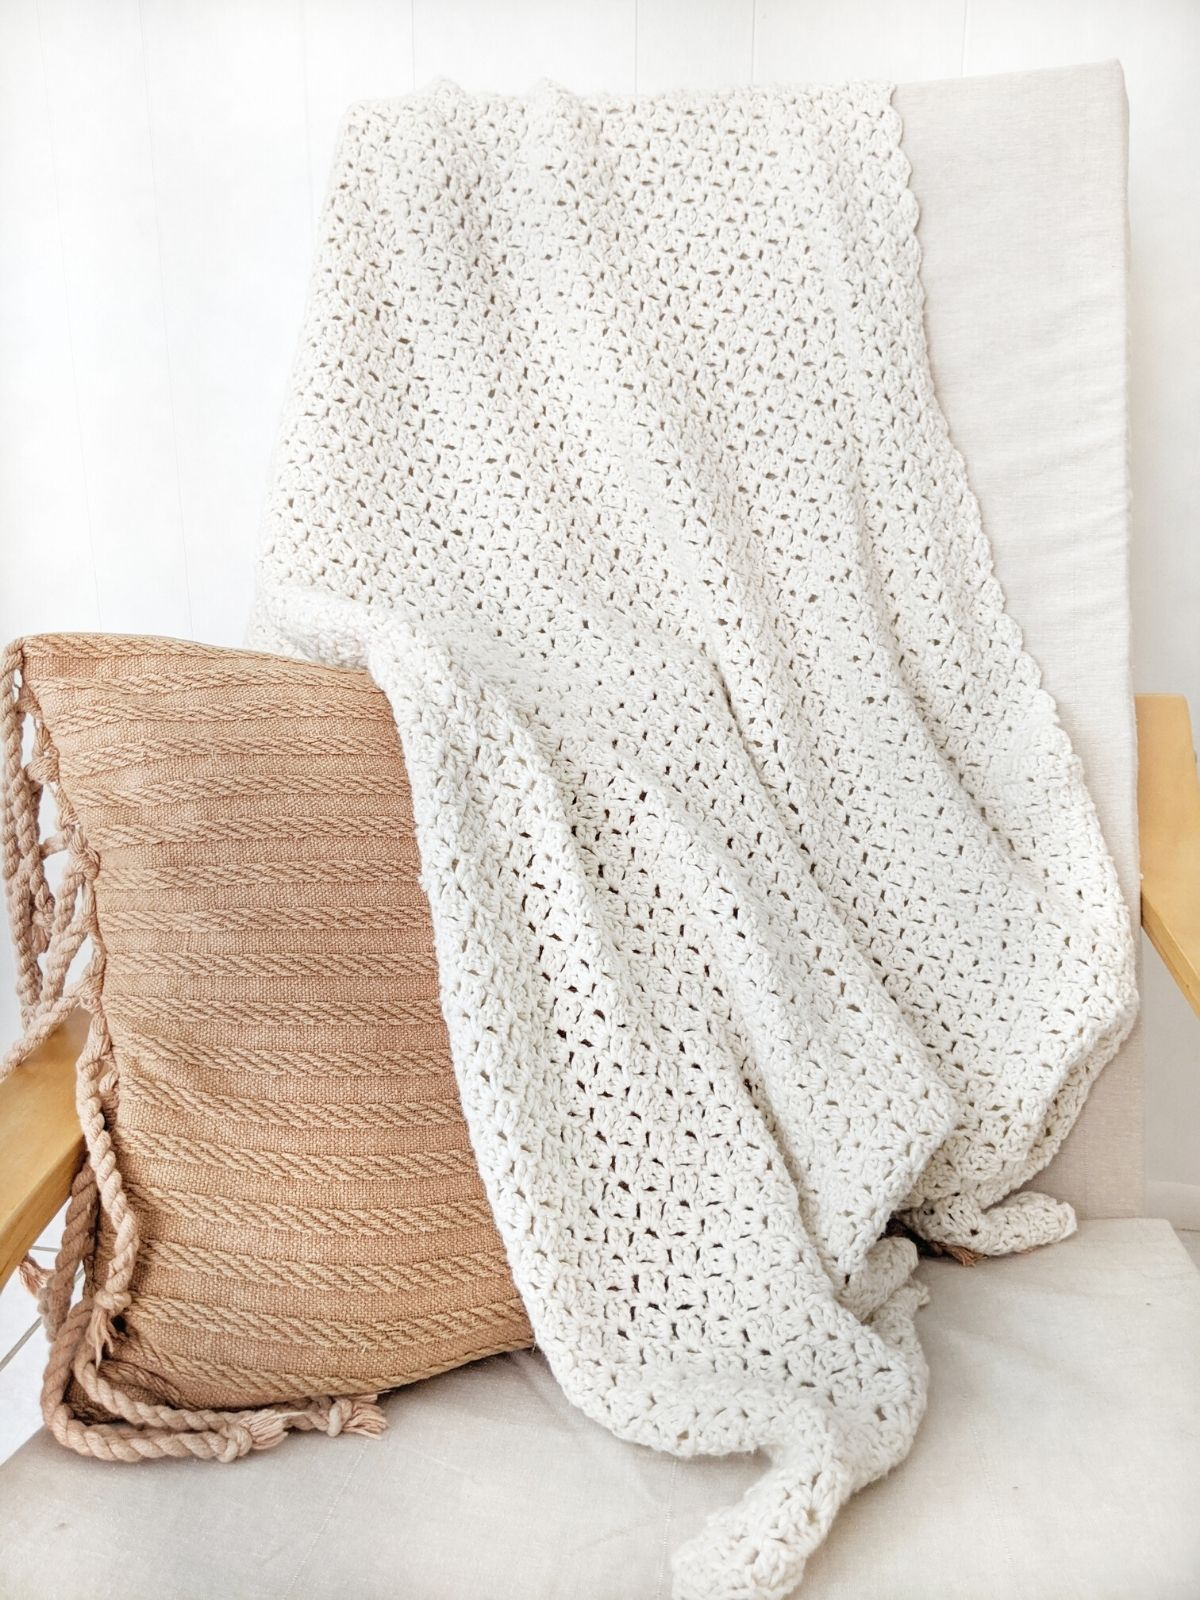 cotton crochet blanket on a Ikea chair with a boho fringe orange pillow